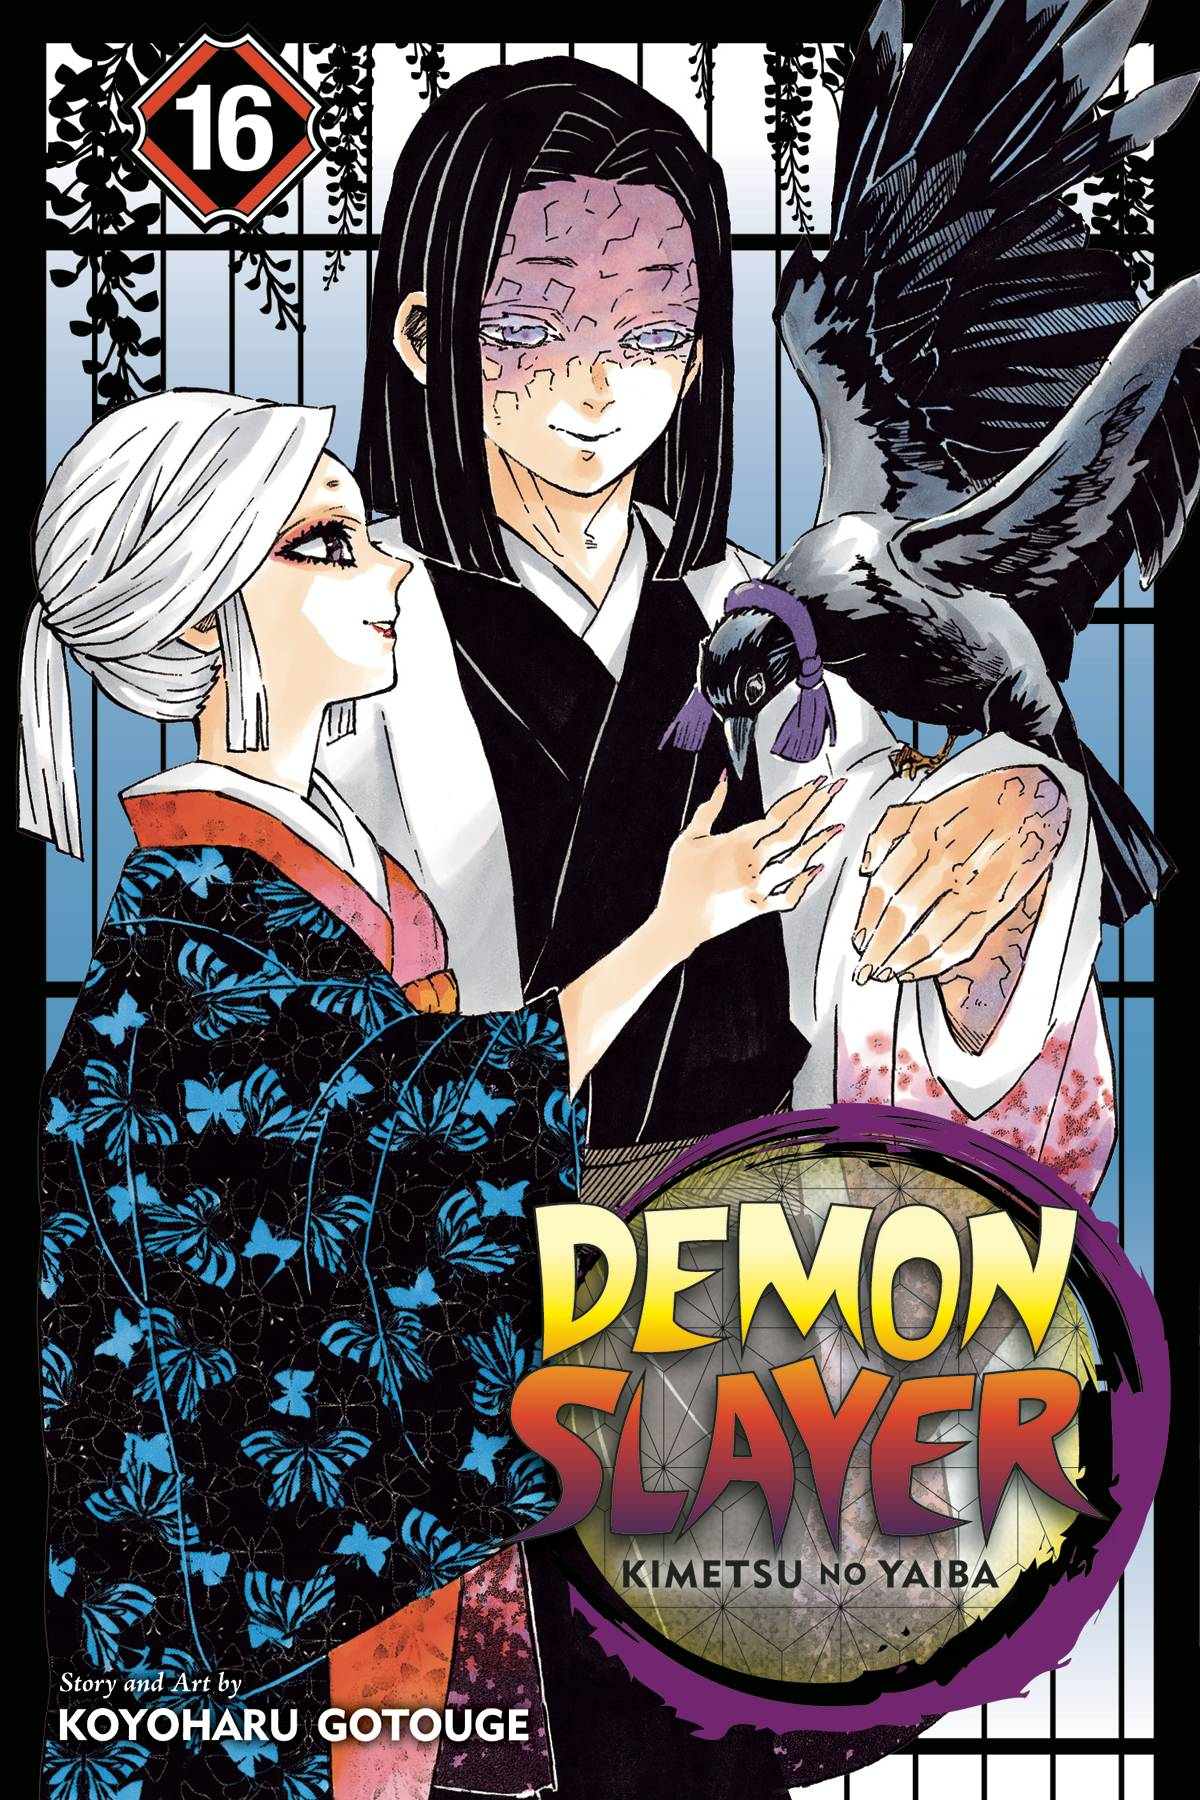 DEMON SLAYER KIMETSU NO YAIBA GN 16